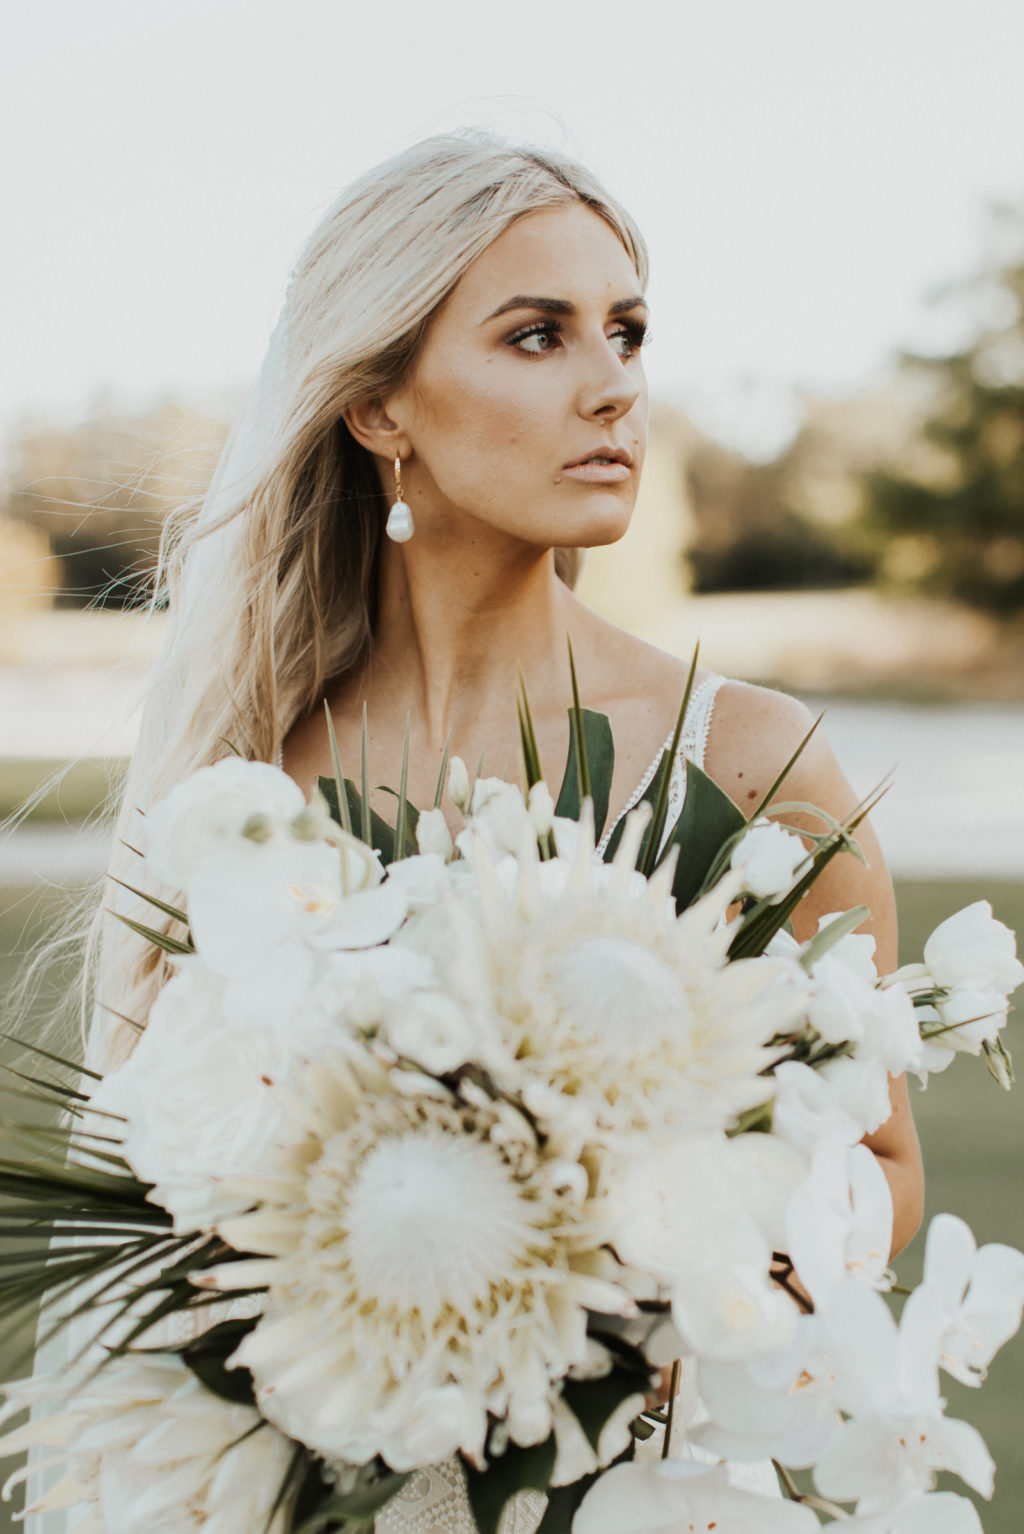 Timeless Bride Holding Lush Neutral Floral Bouquet, King Proteas, White Orchids, Palm Fronds